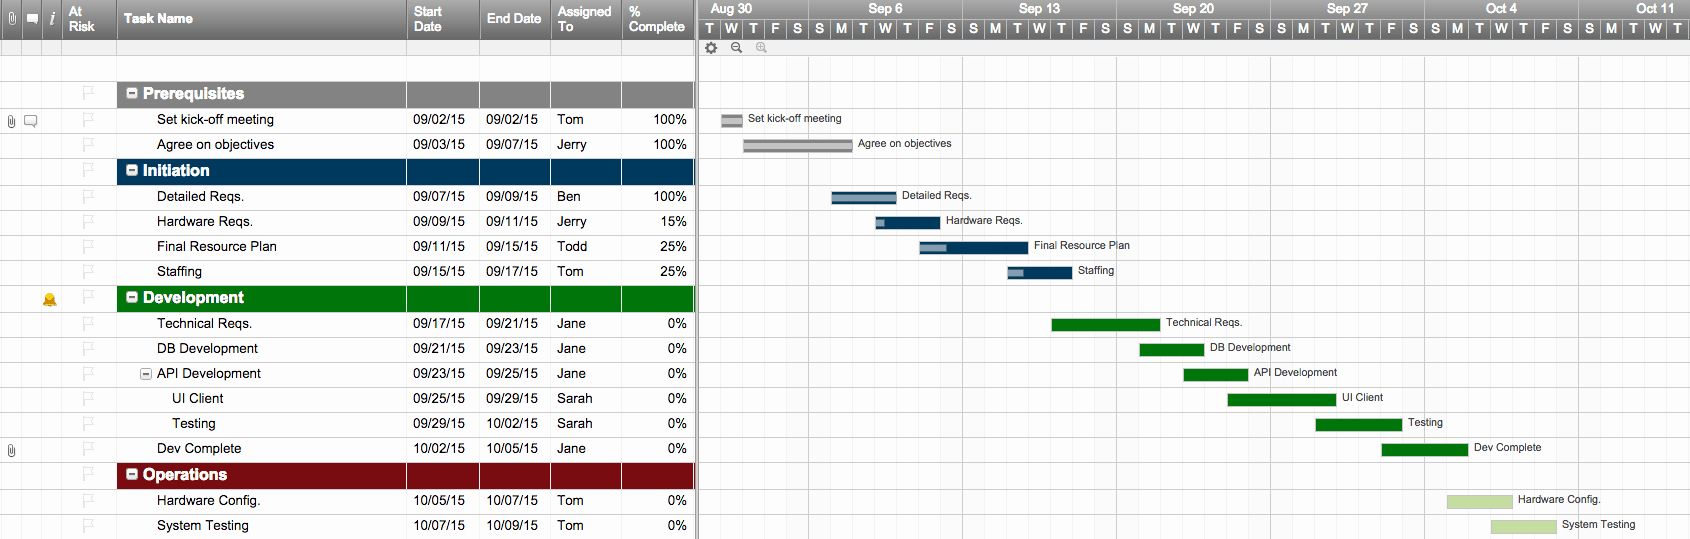 Project Action Plan Template Fresh top Project Plan Templates for Excel